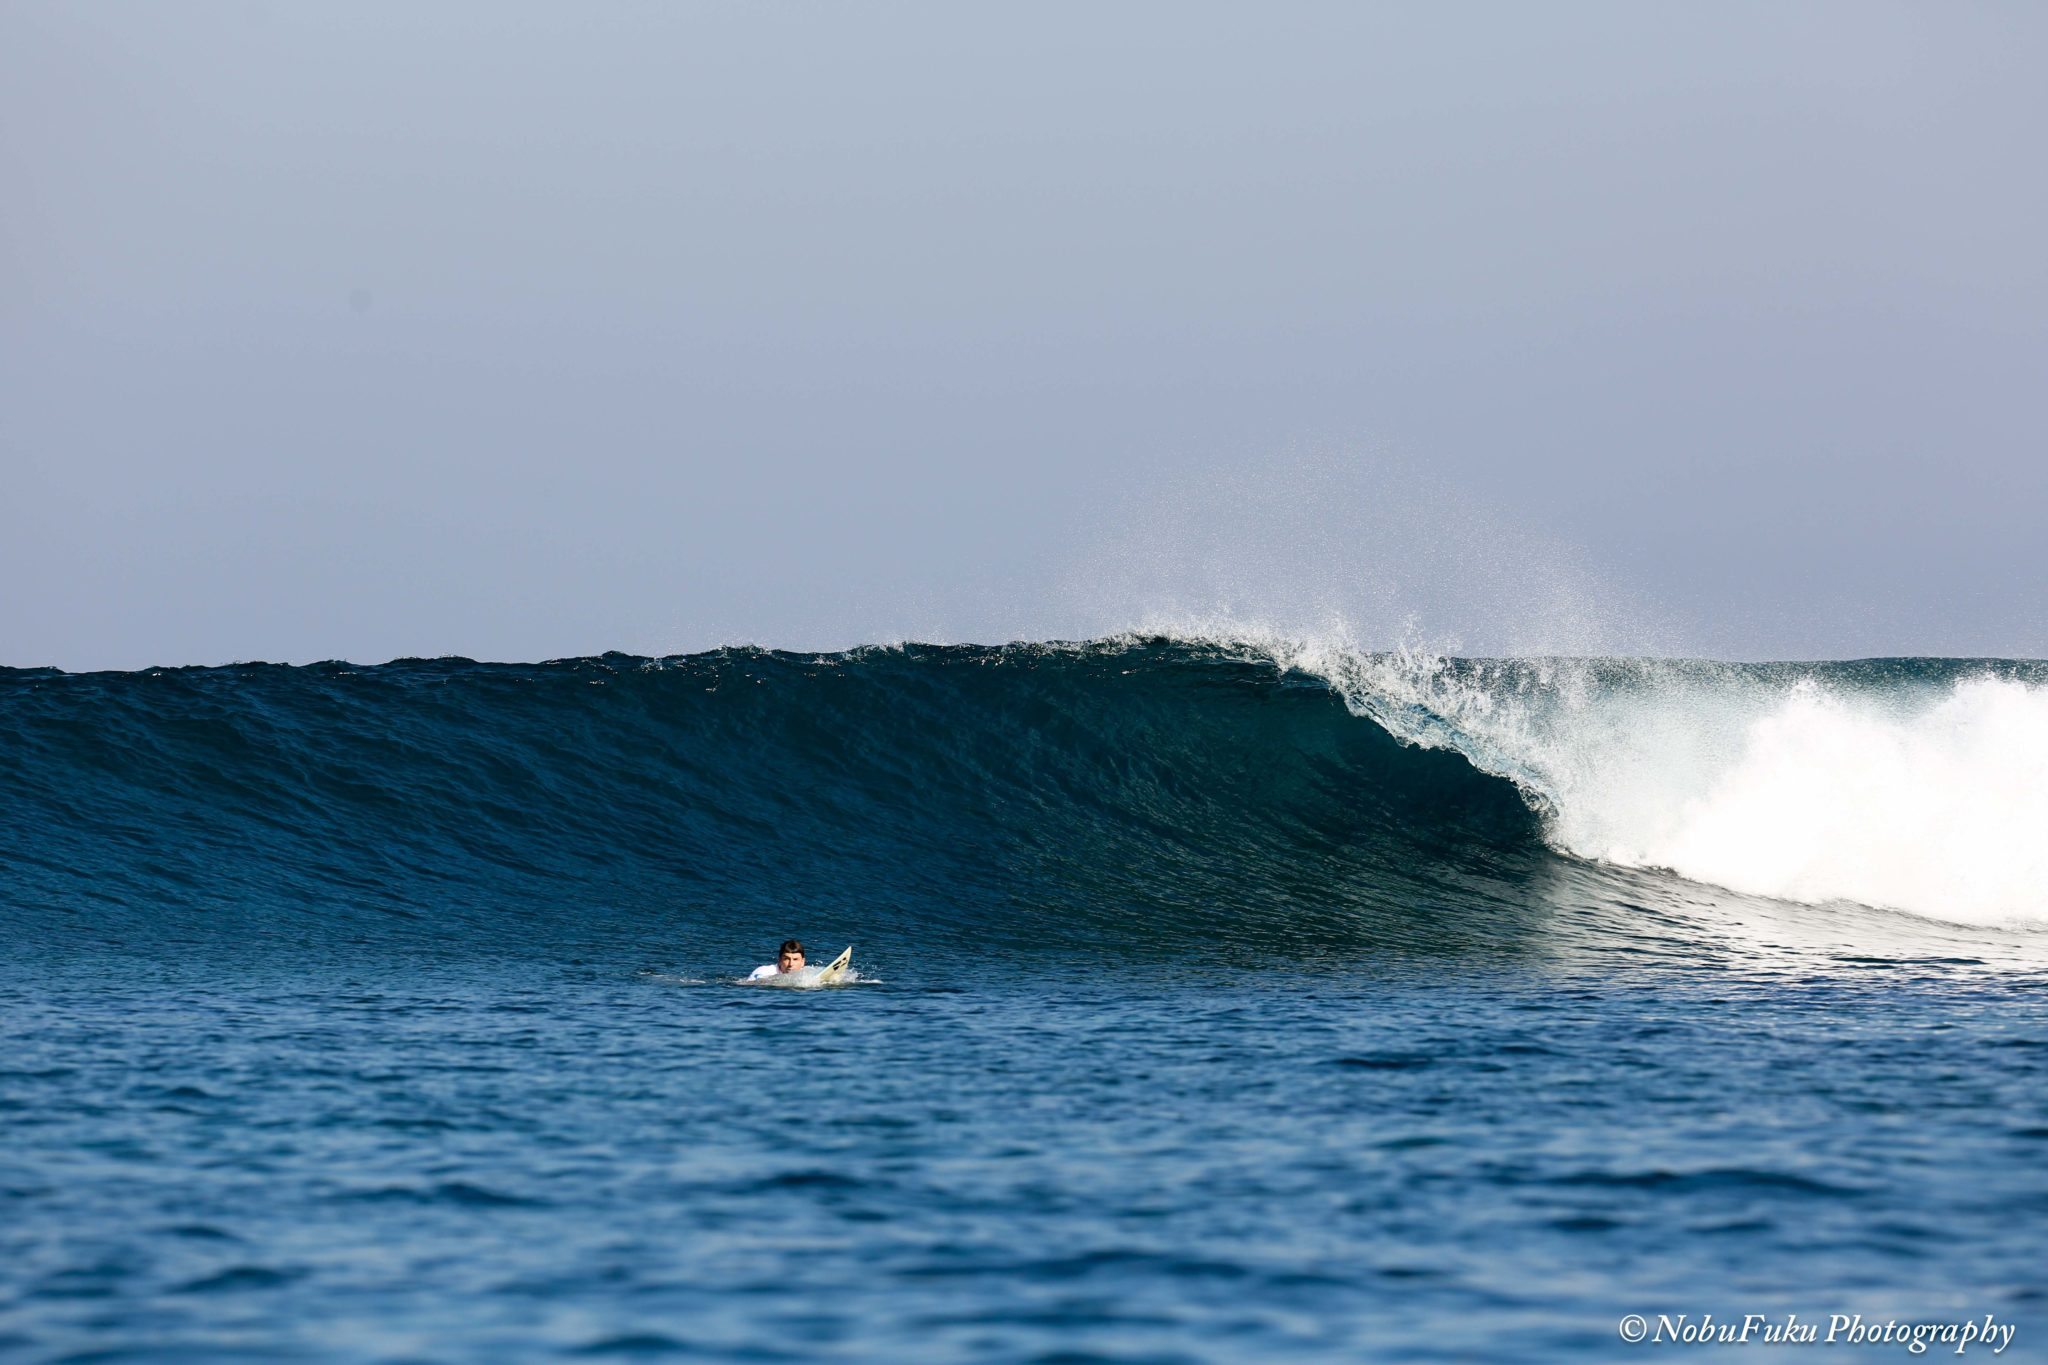 surfing the right hander surfbreak at Bo'a beach Rote island Indonesia